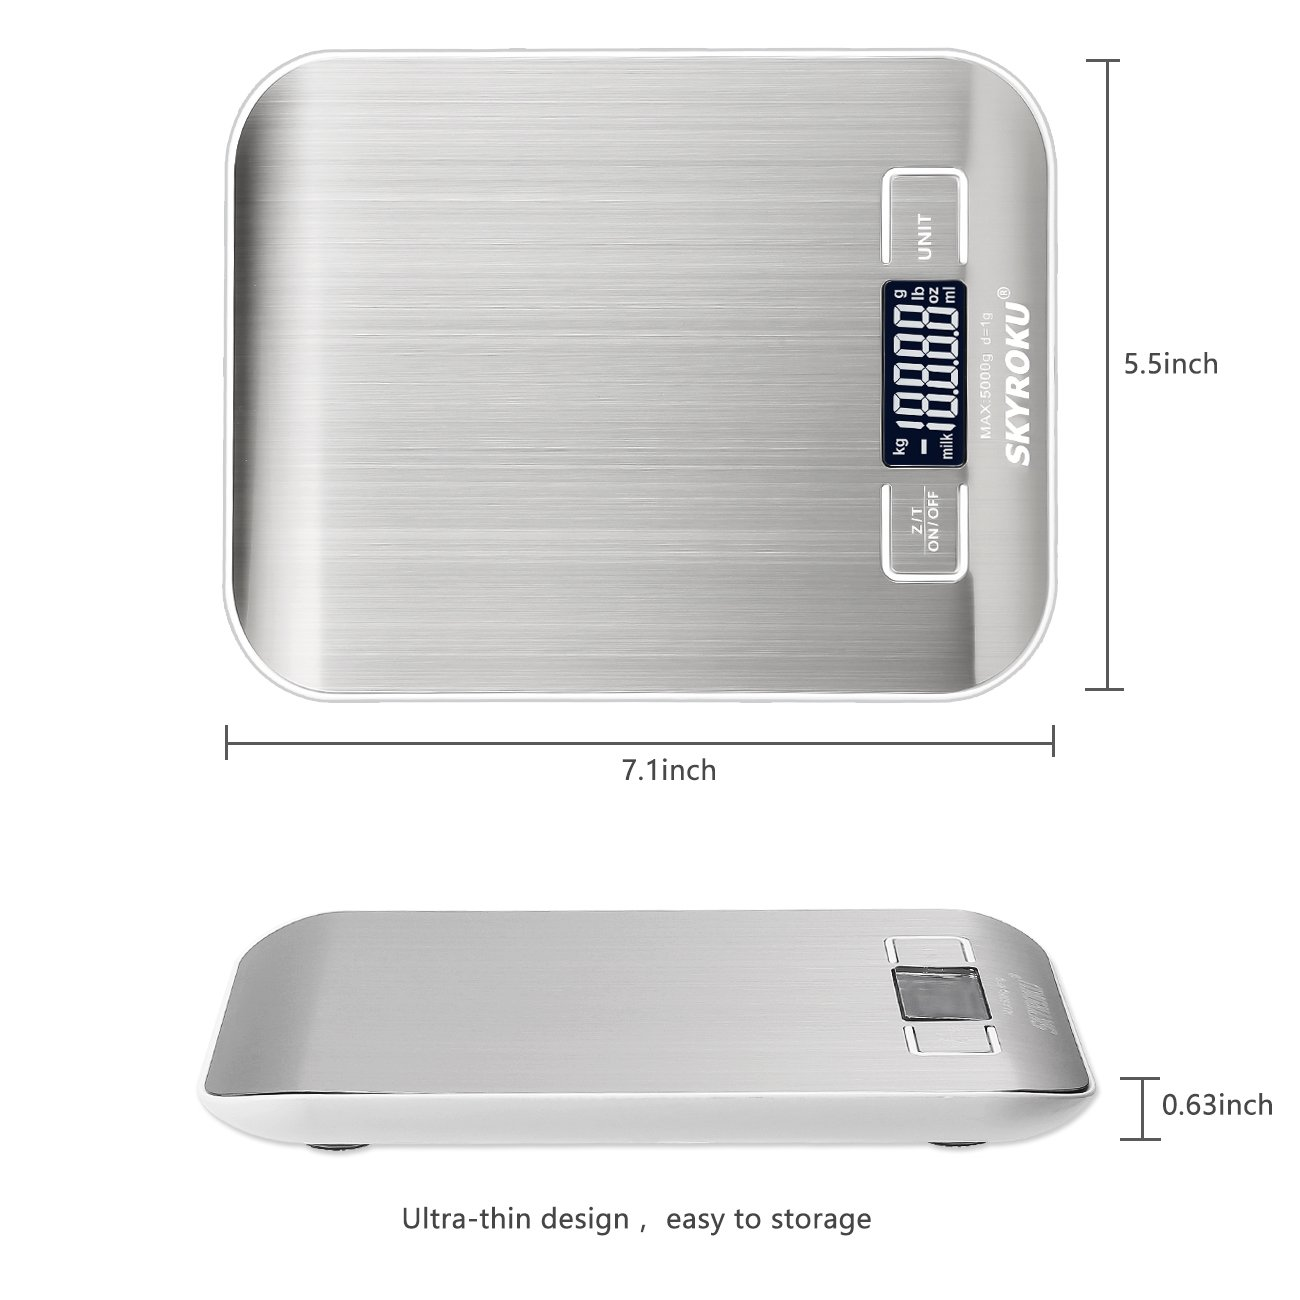 Digital Kitchen Scale, SKYROKU Multifuction Food Scale with LCD Display, 11lb 5kg, Stainless Steel, Silver(No Battery Included)